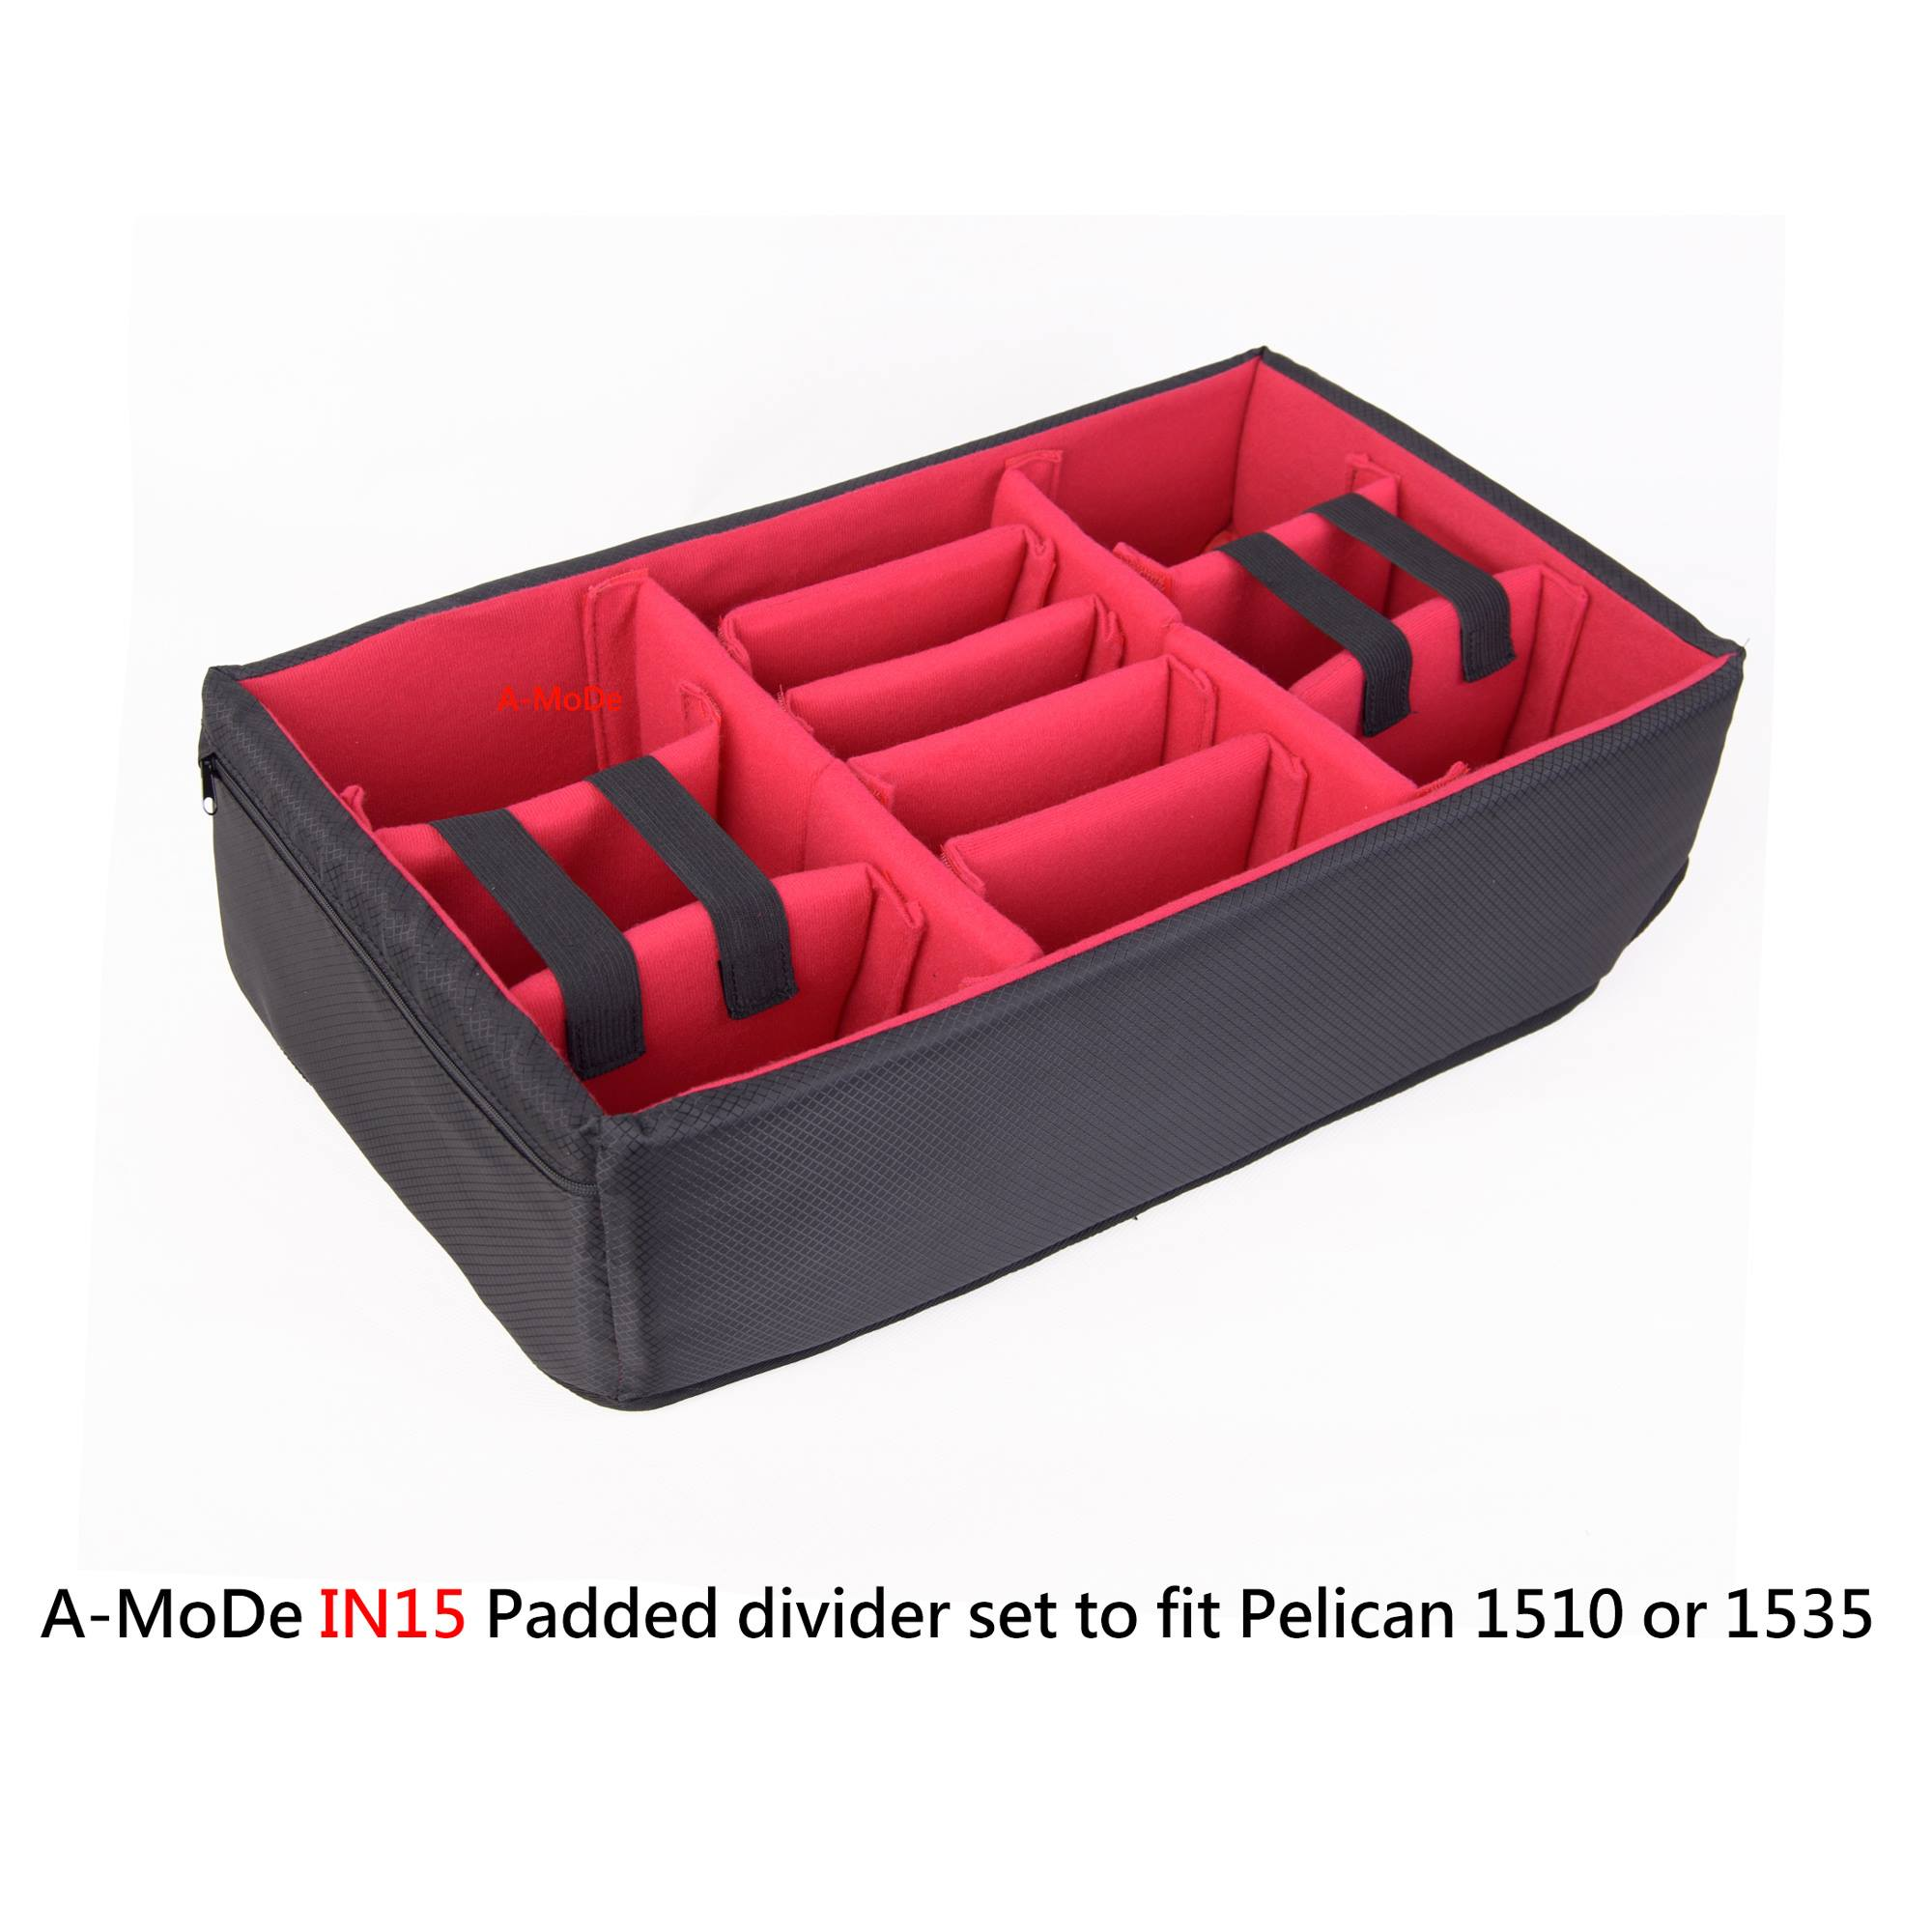 A-MoDe IN15 for Pilican 1510 & 1535